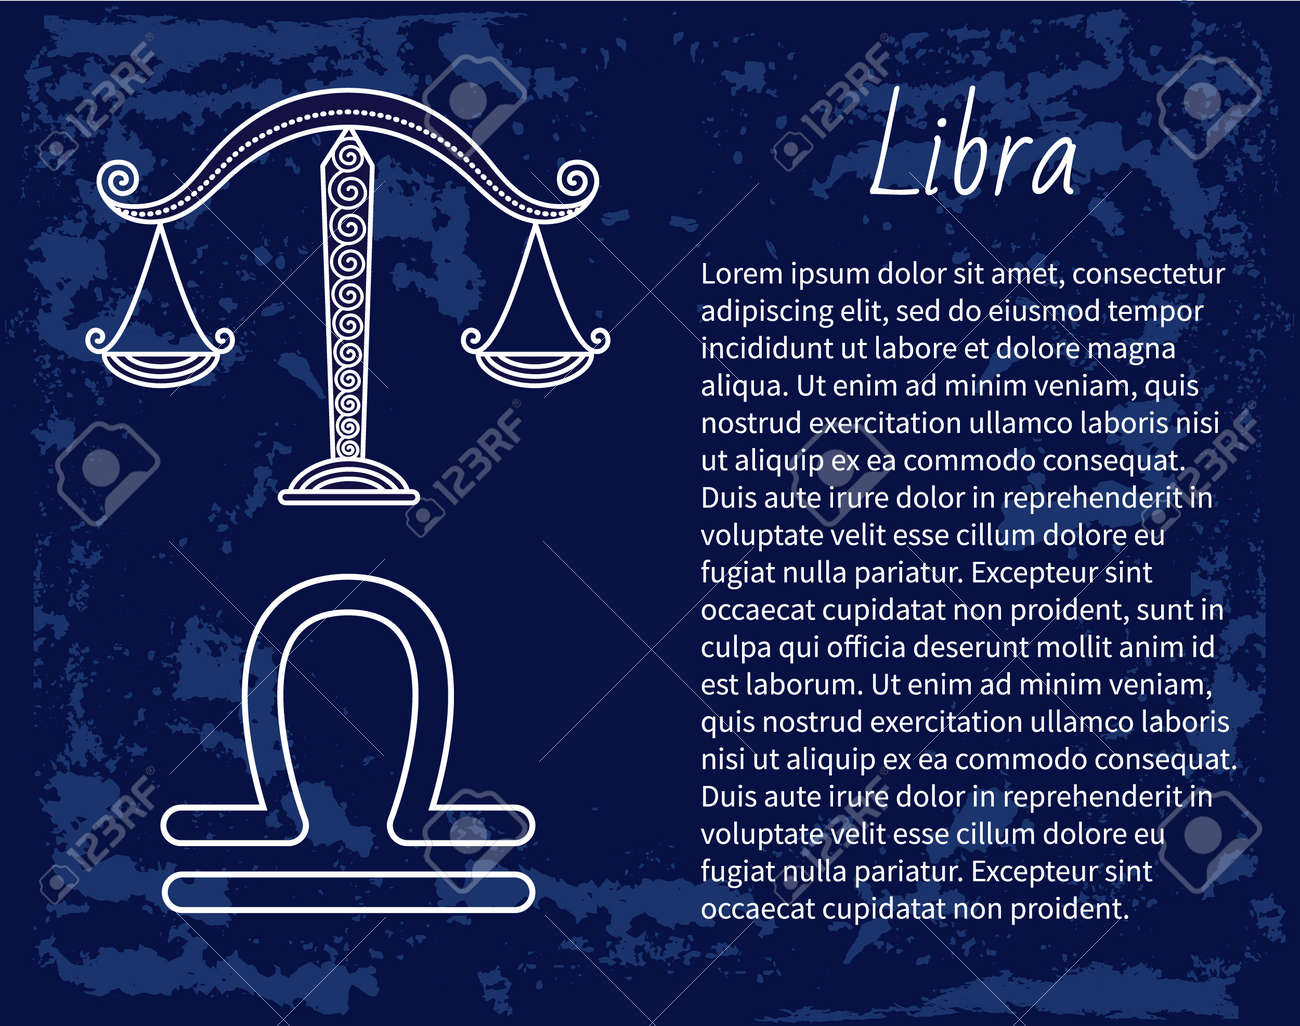 Libra Zodiac Sign Of Horoscope Balance Scales Symbol Of Astrological Royalty Free Cliparts Vectors And Stock Illustration Image 142422640